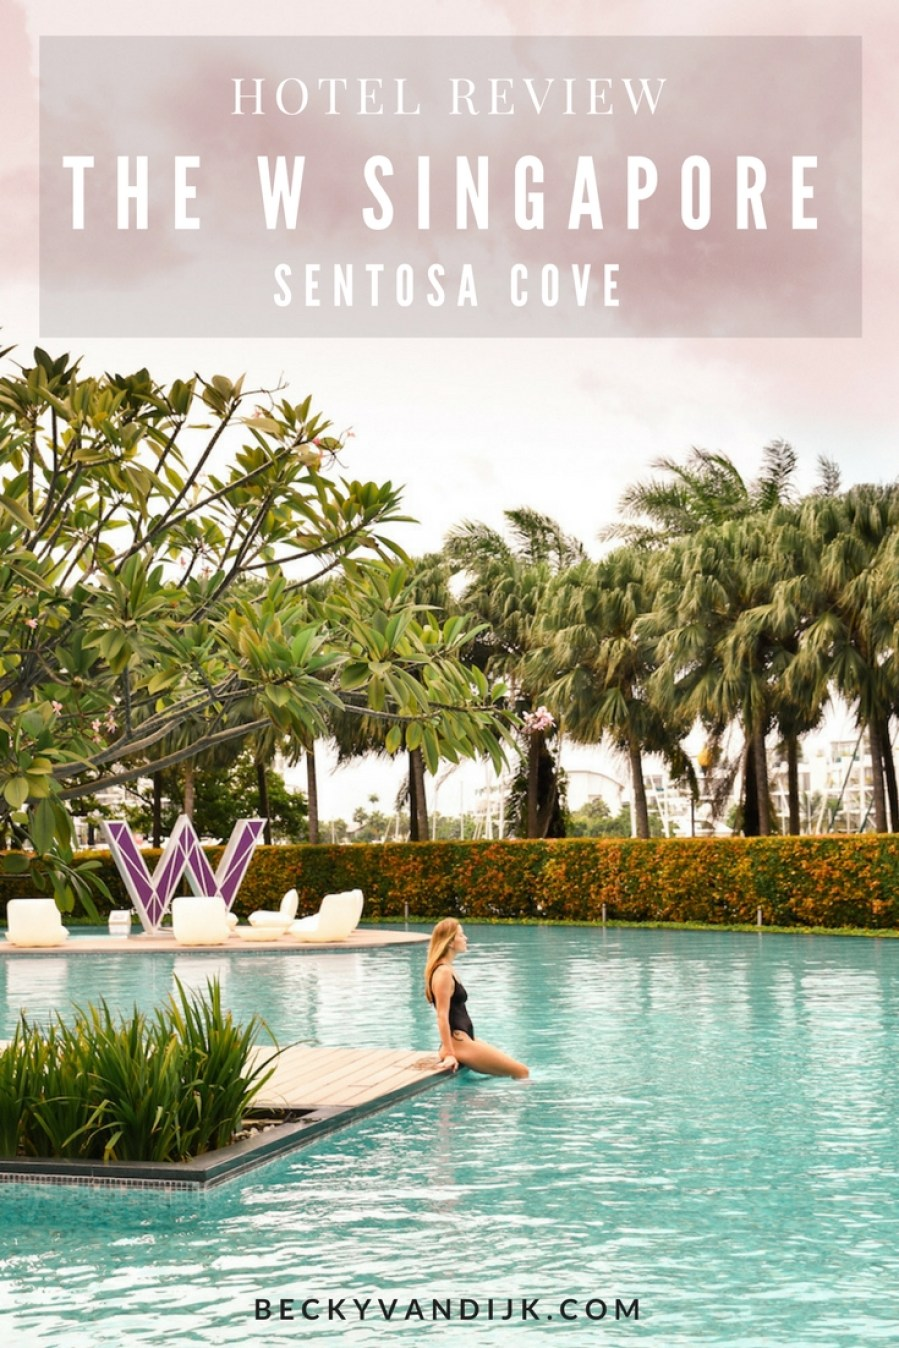 THE W SINGAPORE SENTOSA COVE HOTEL REVIEW